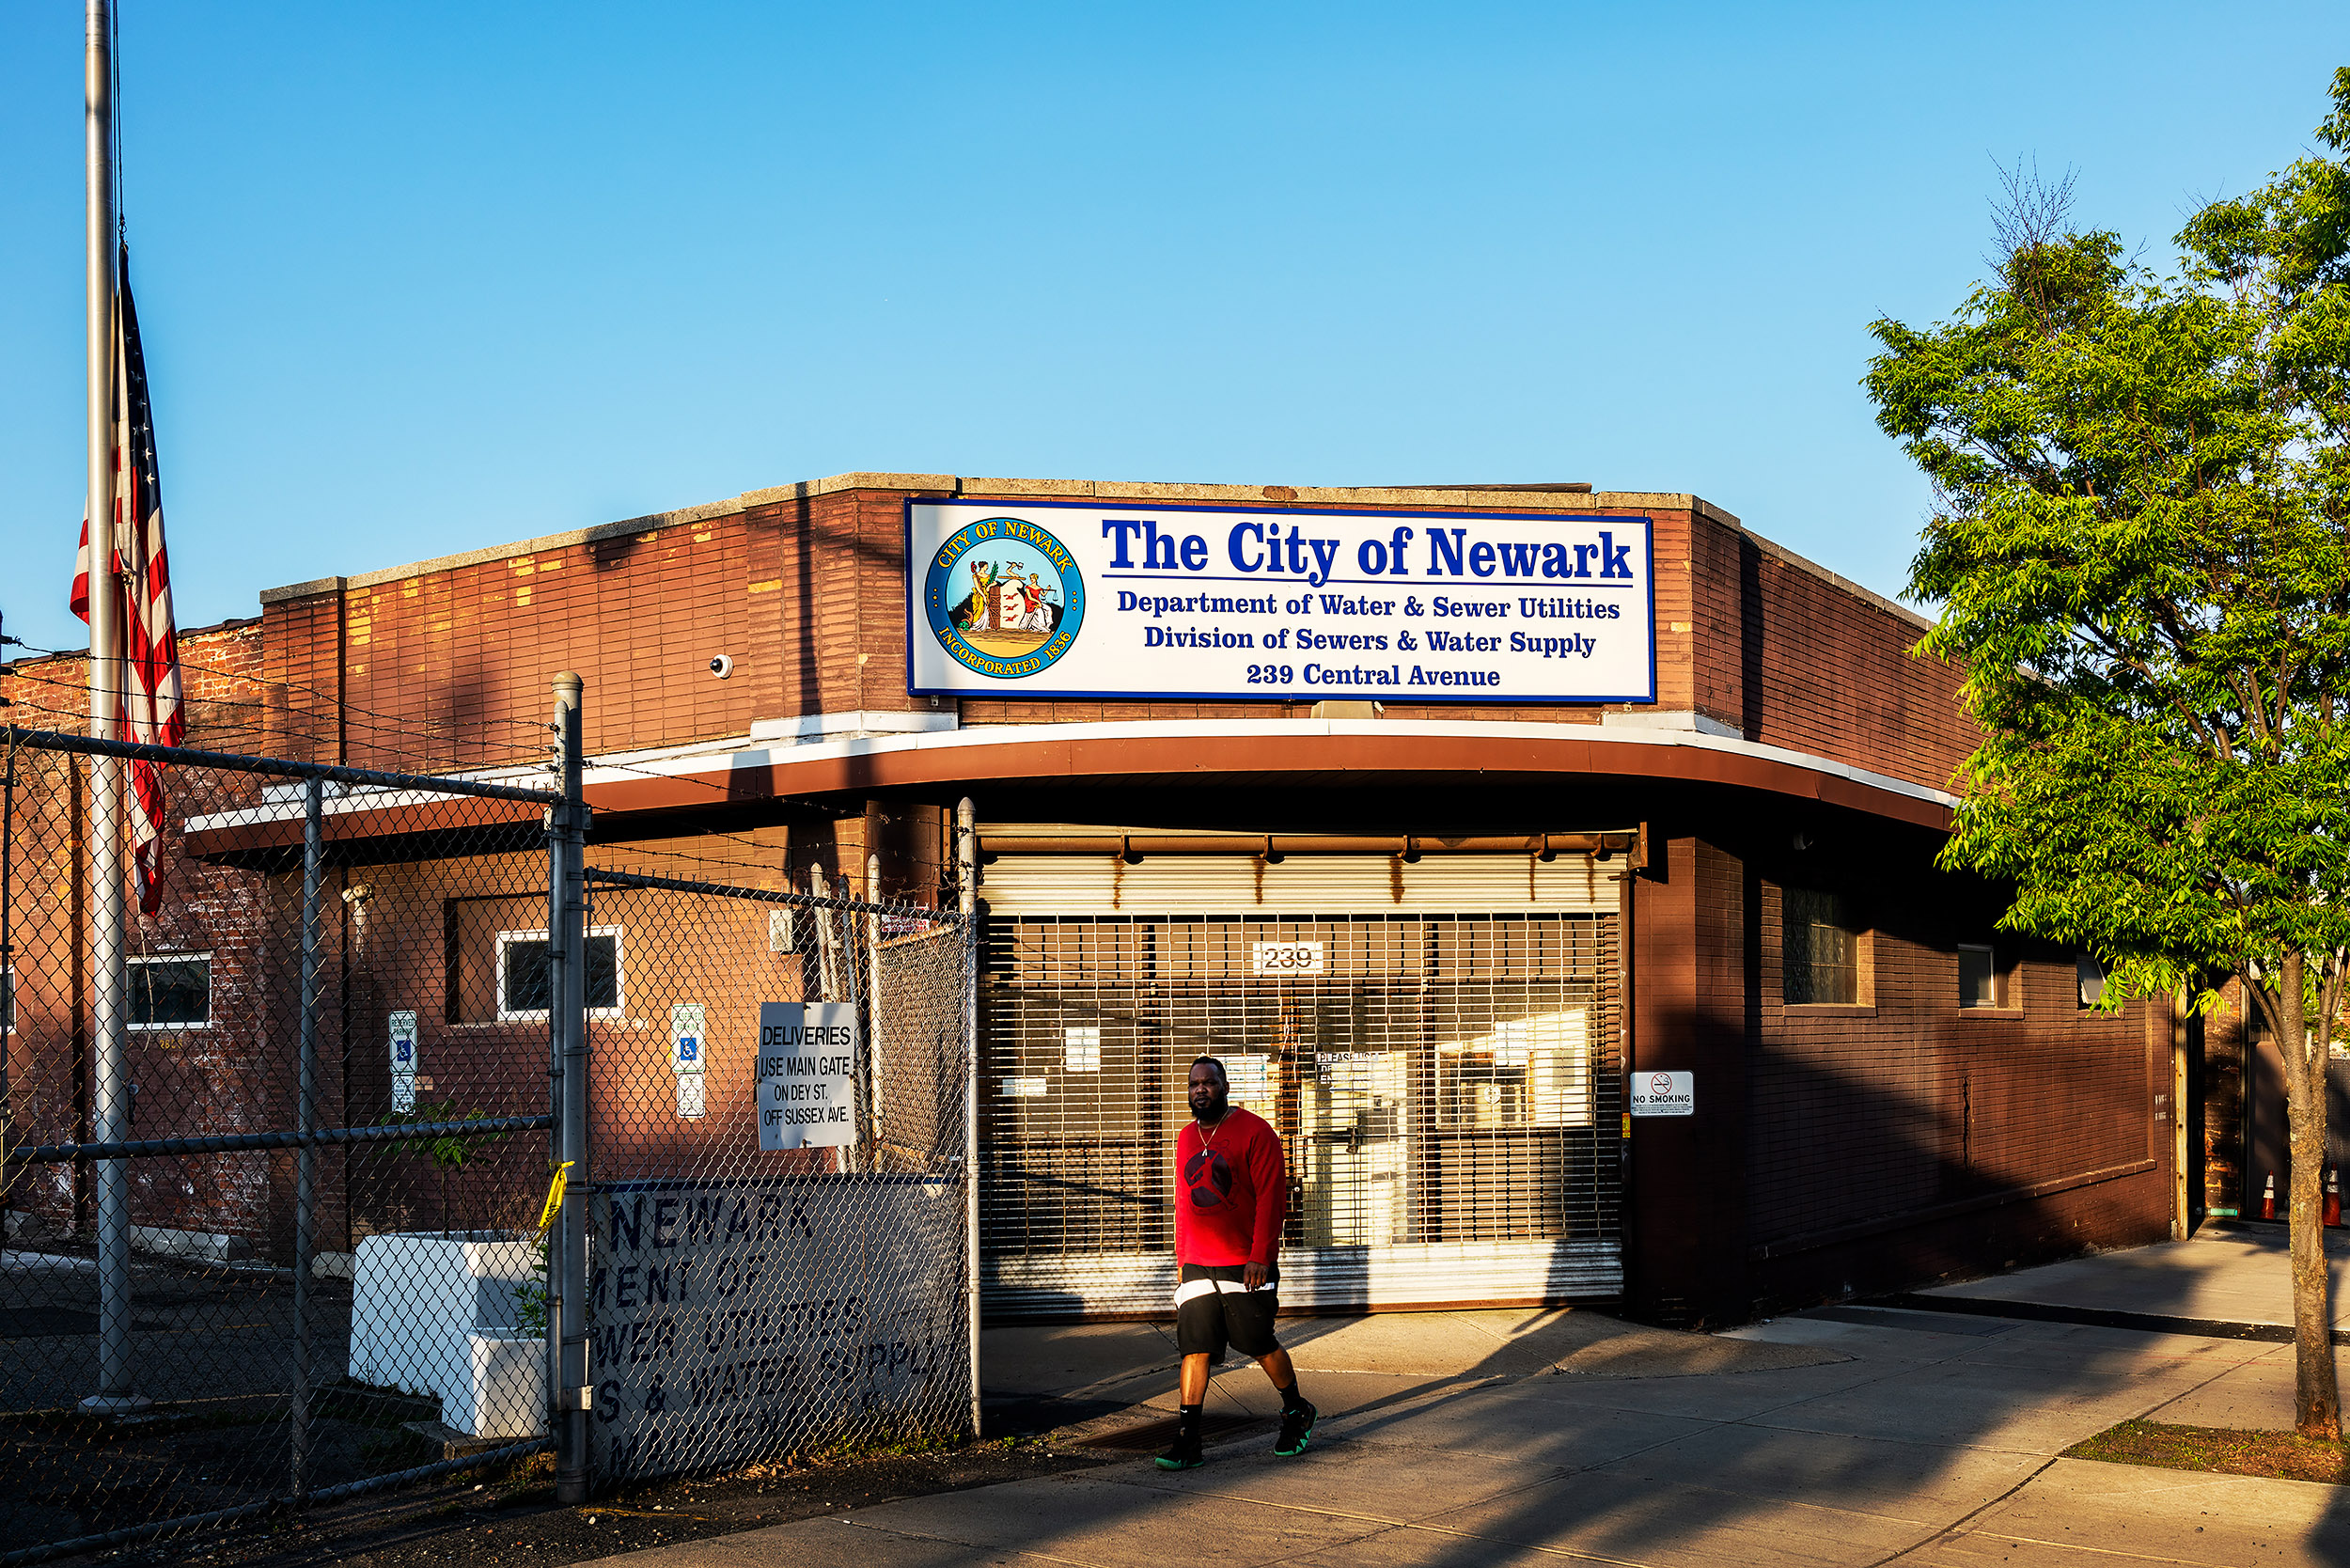 Only certain Newark residents have access to free water filters at limited distribution points.